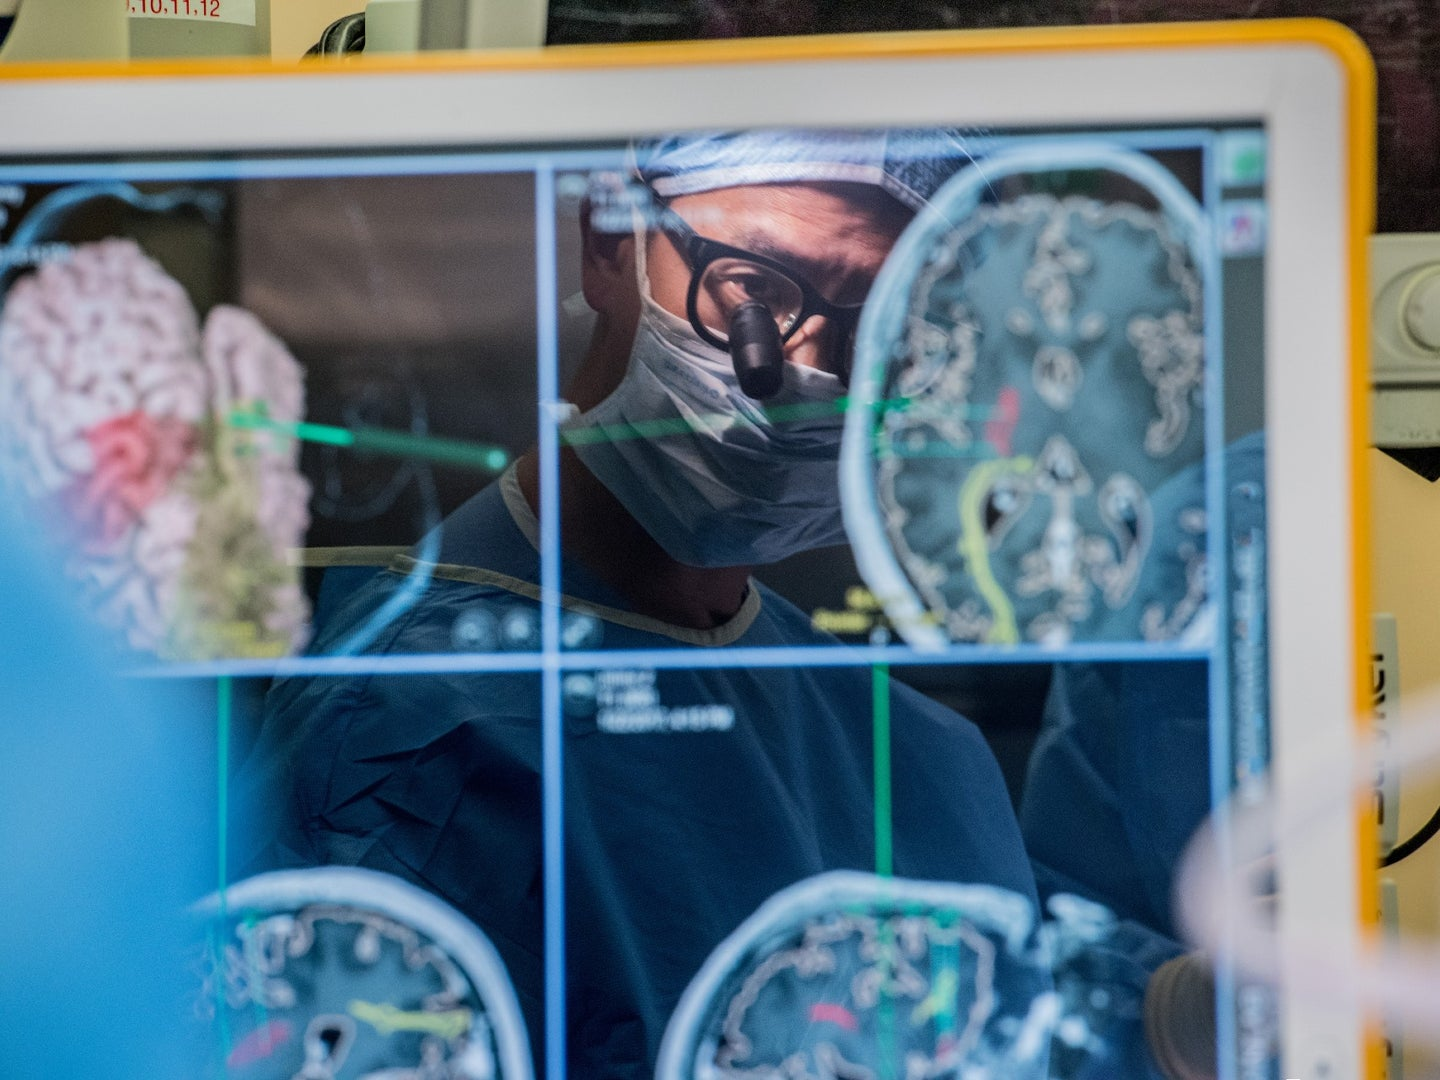 A doctor looks at images of a brain as he performs surgery.